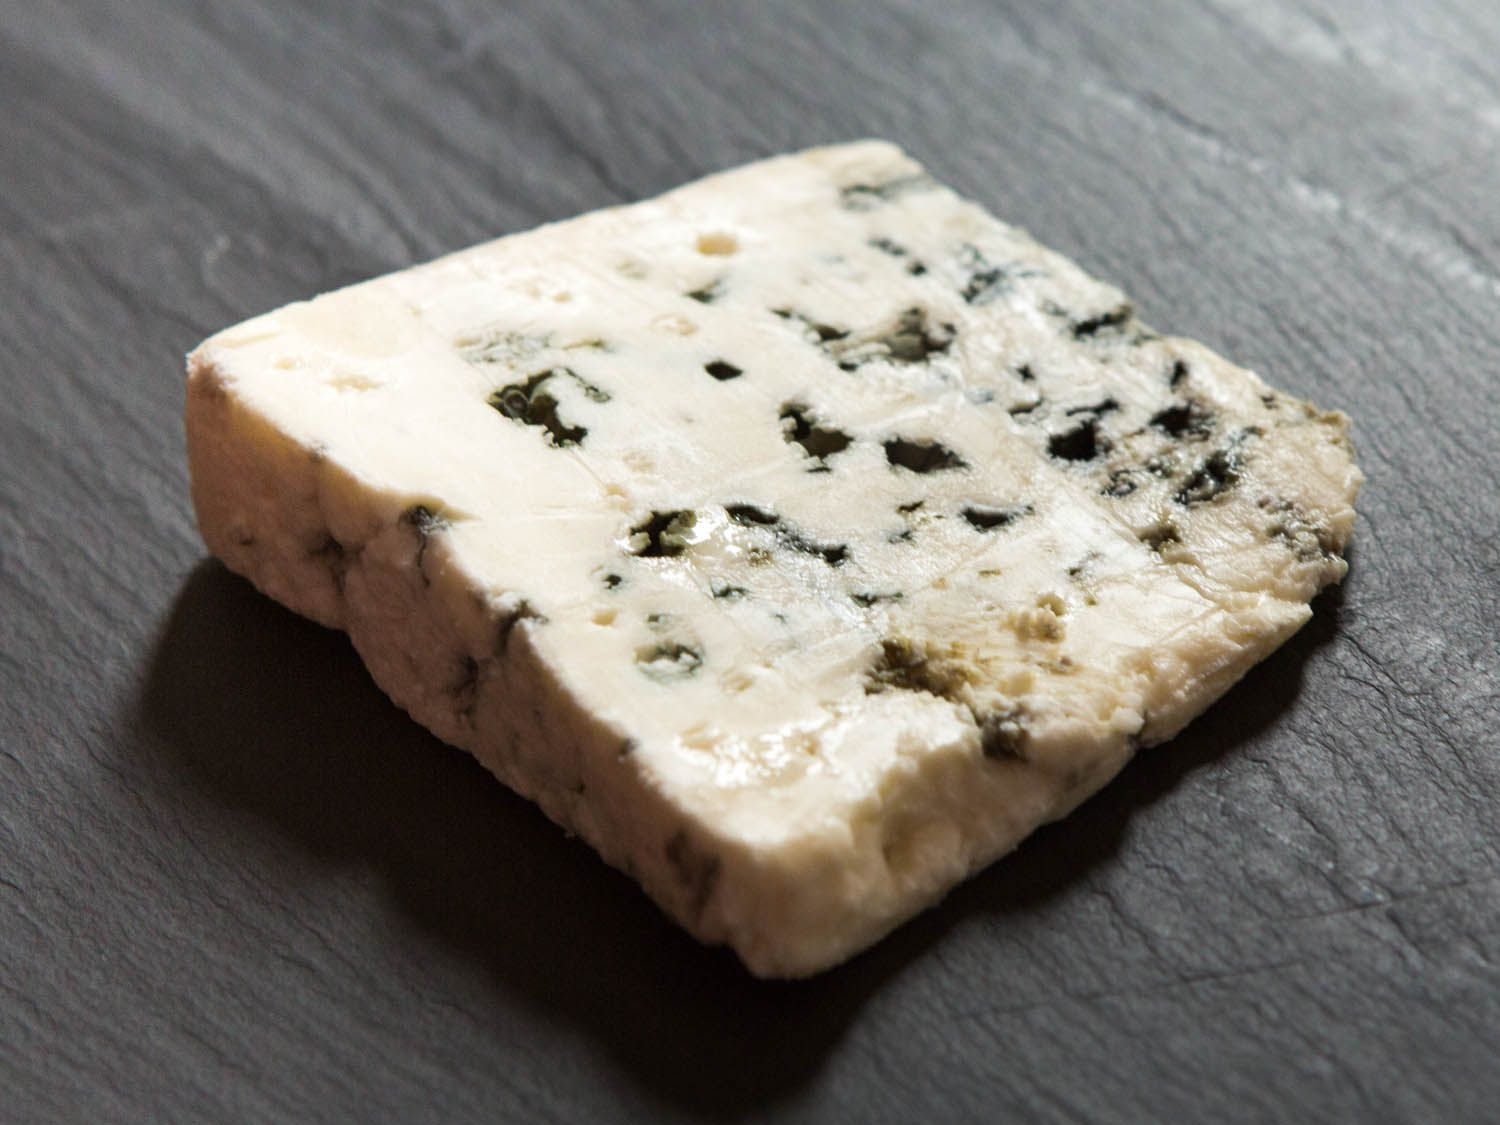 a wedge of Roquefort cheese.